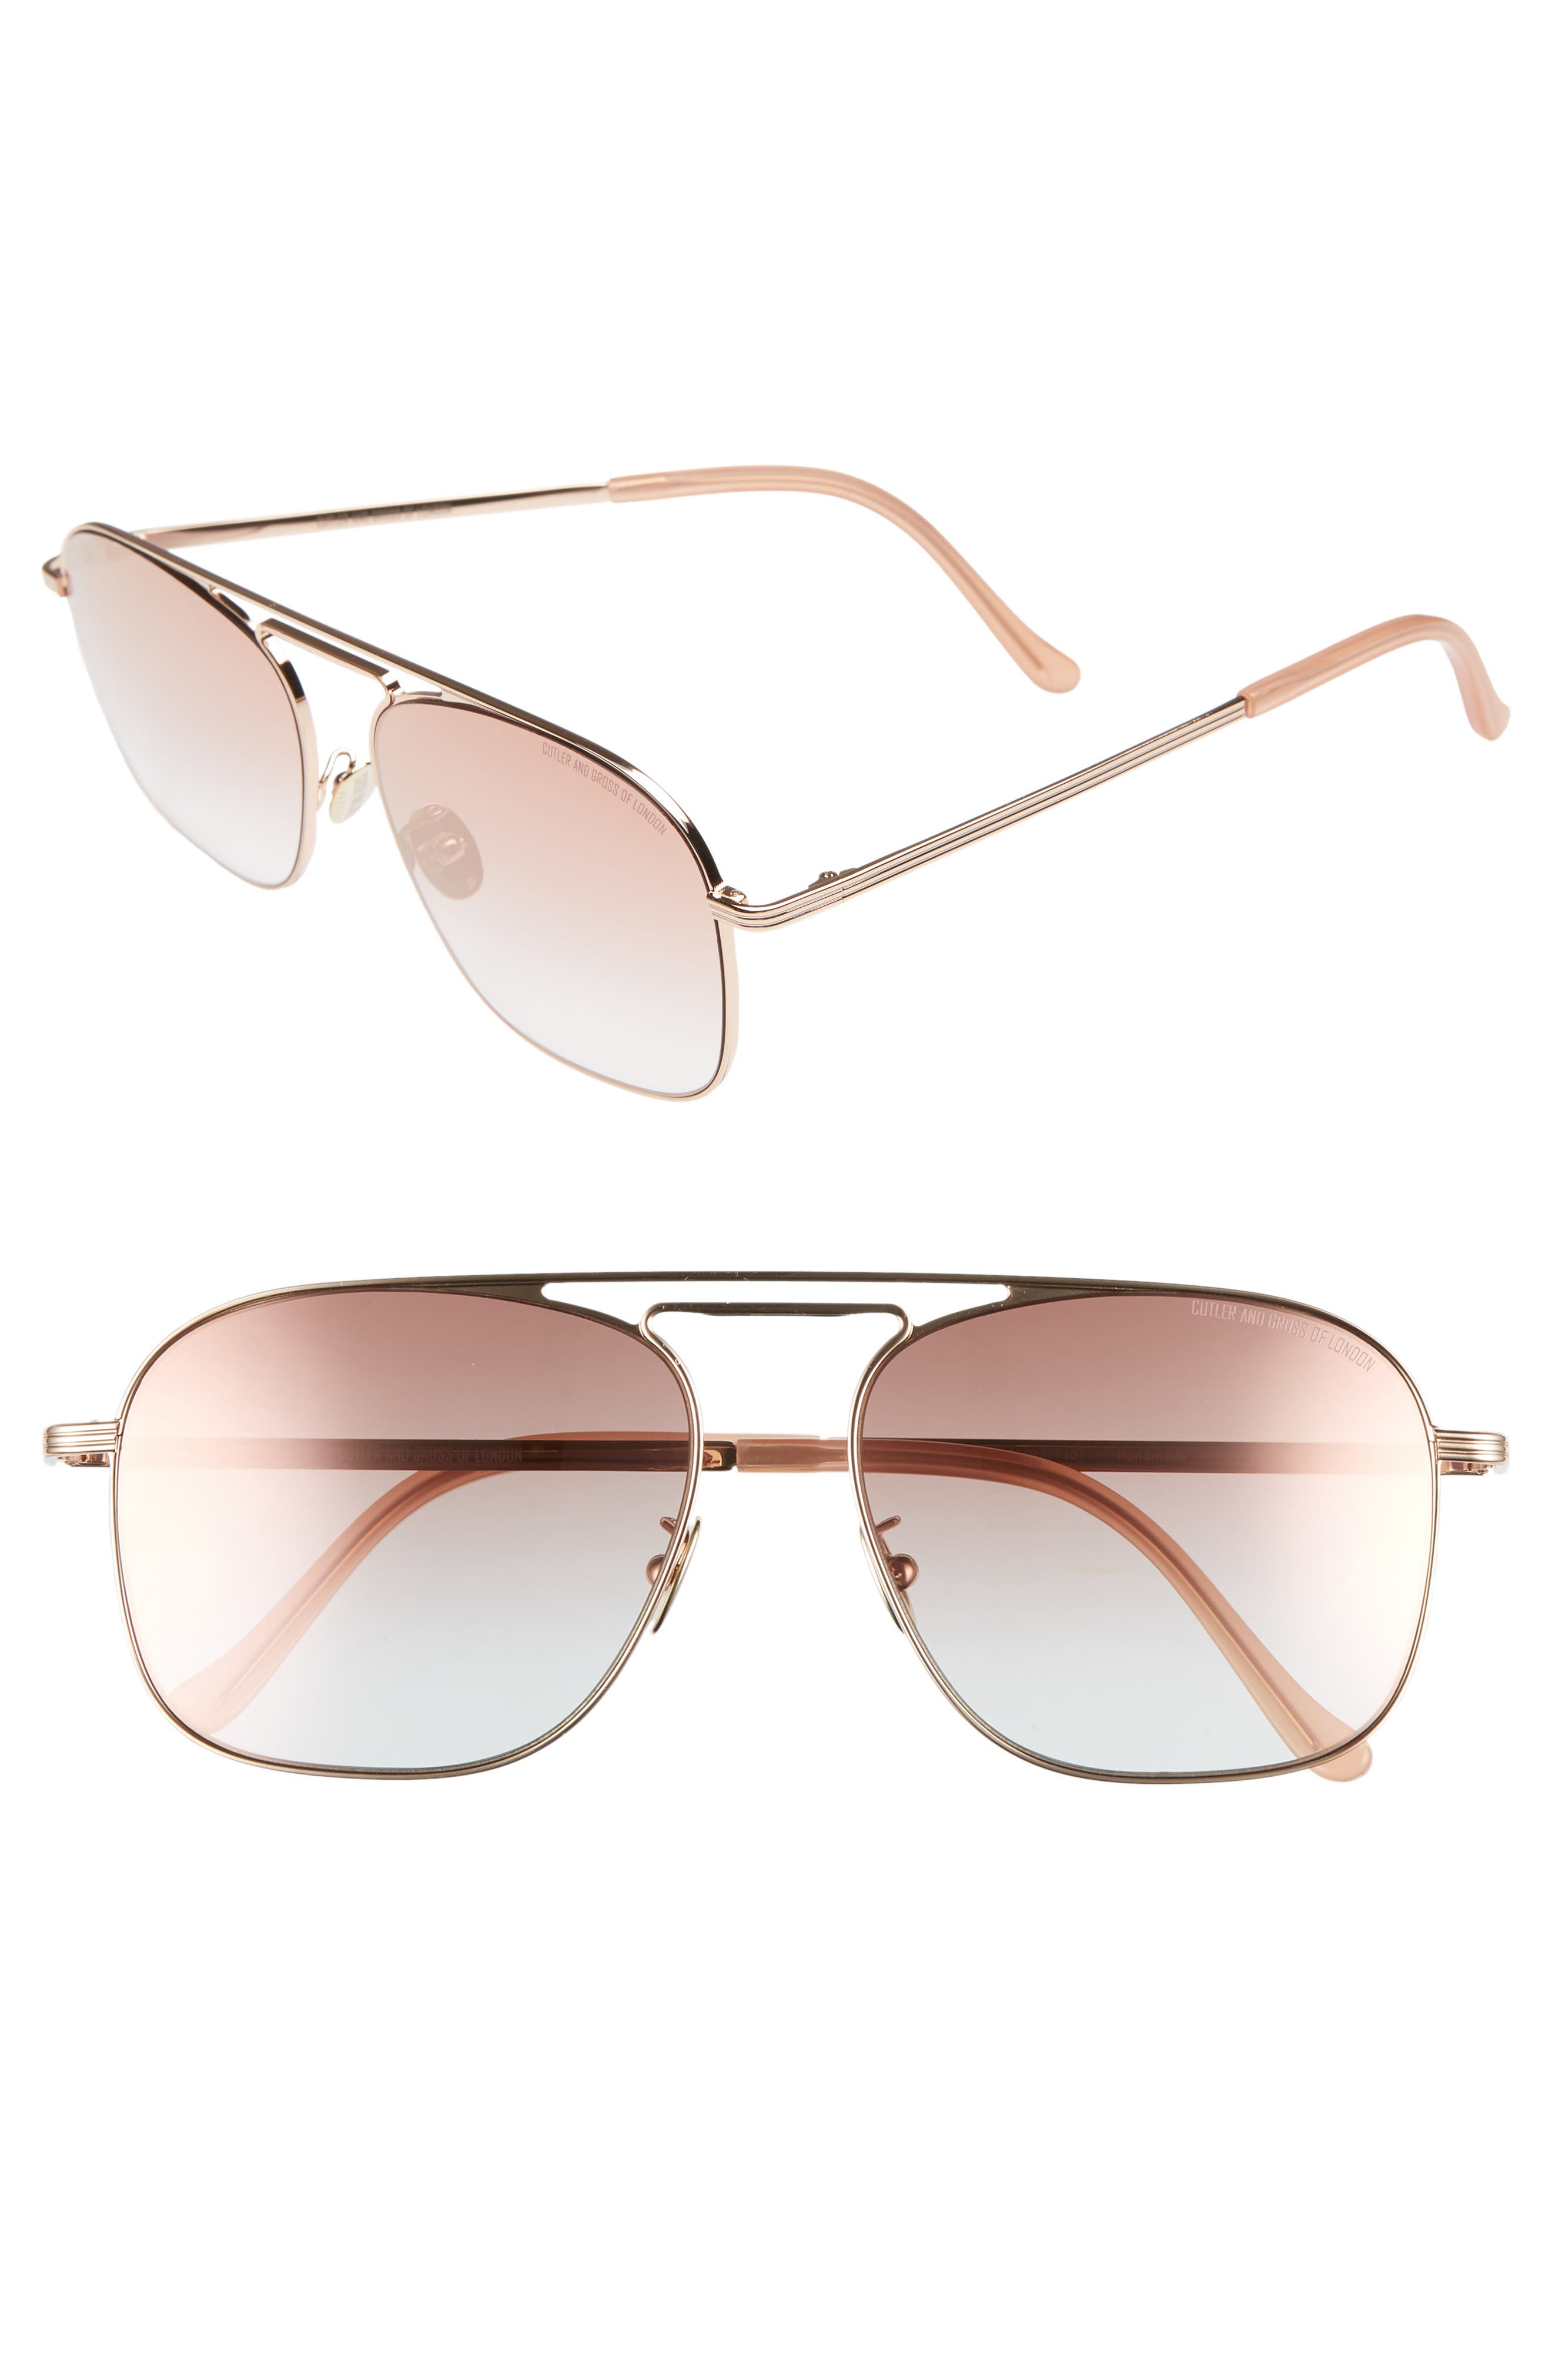 56mm Polarized Navigator Sunglasses,                         Main,                         color, ROSE GOLD/ PINK CHAMPAGNE